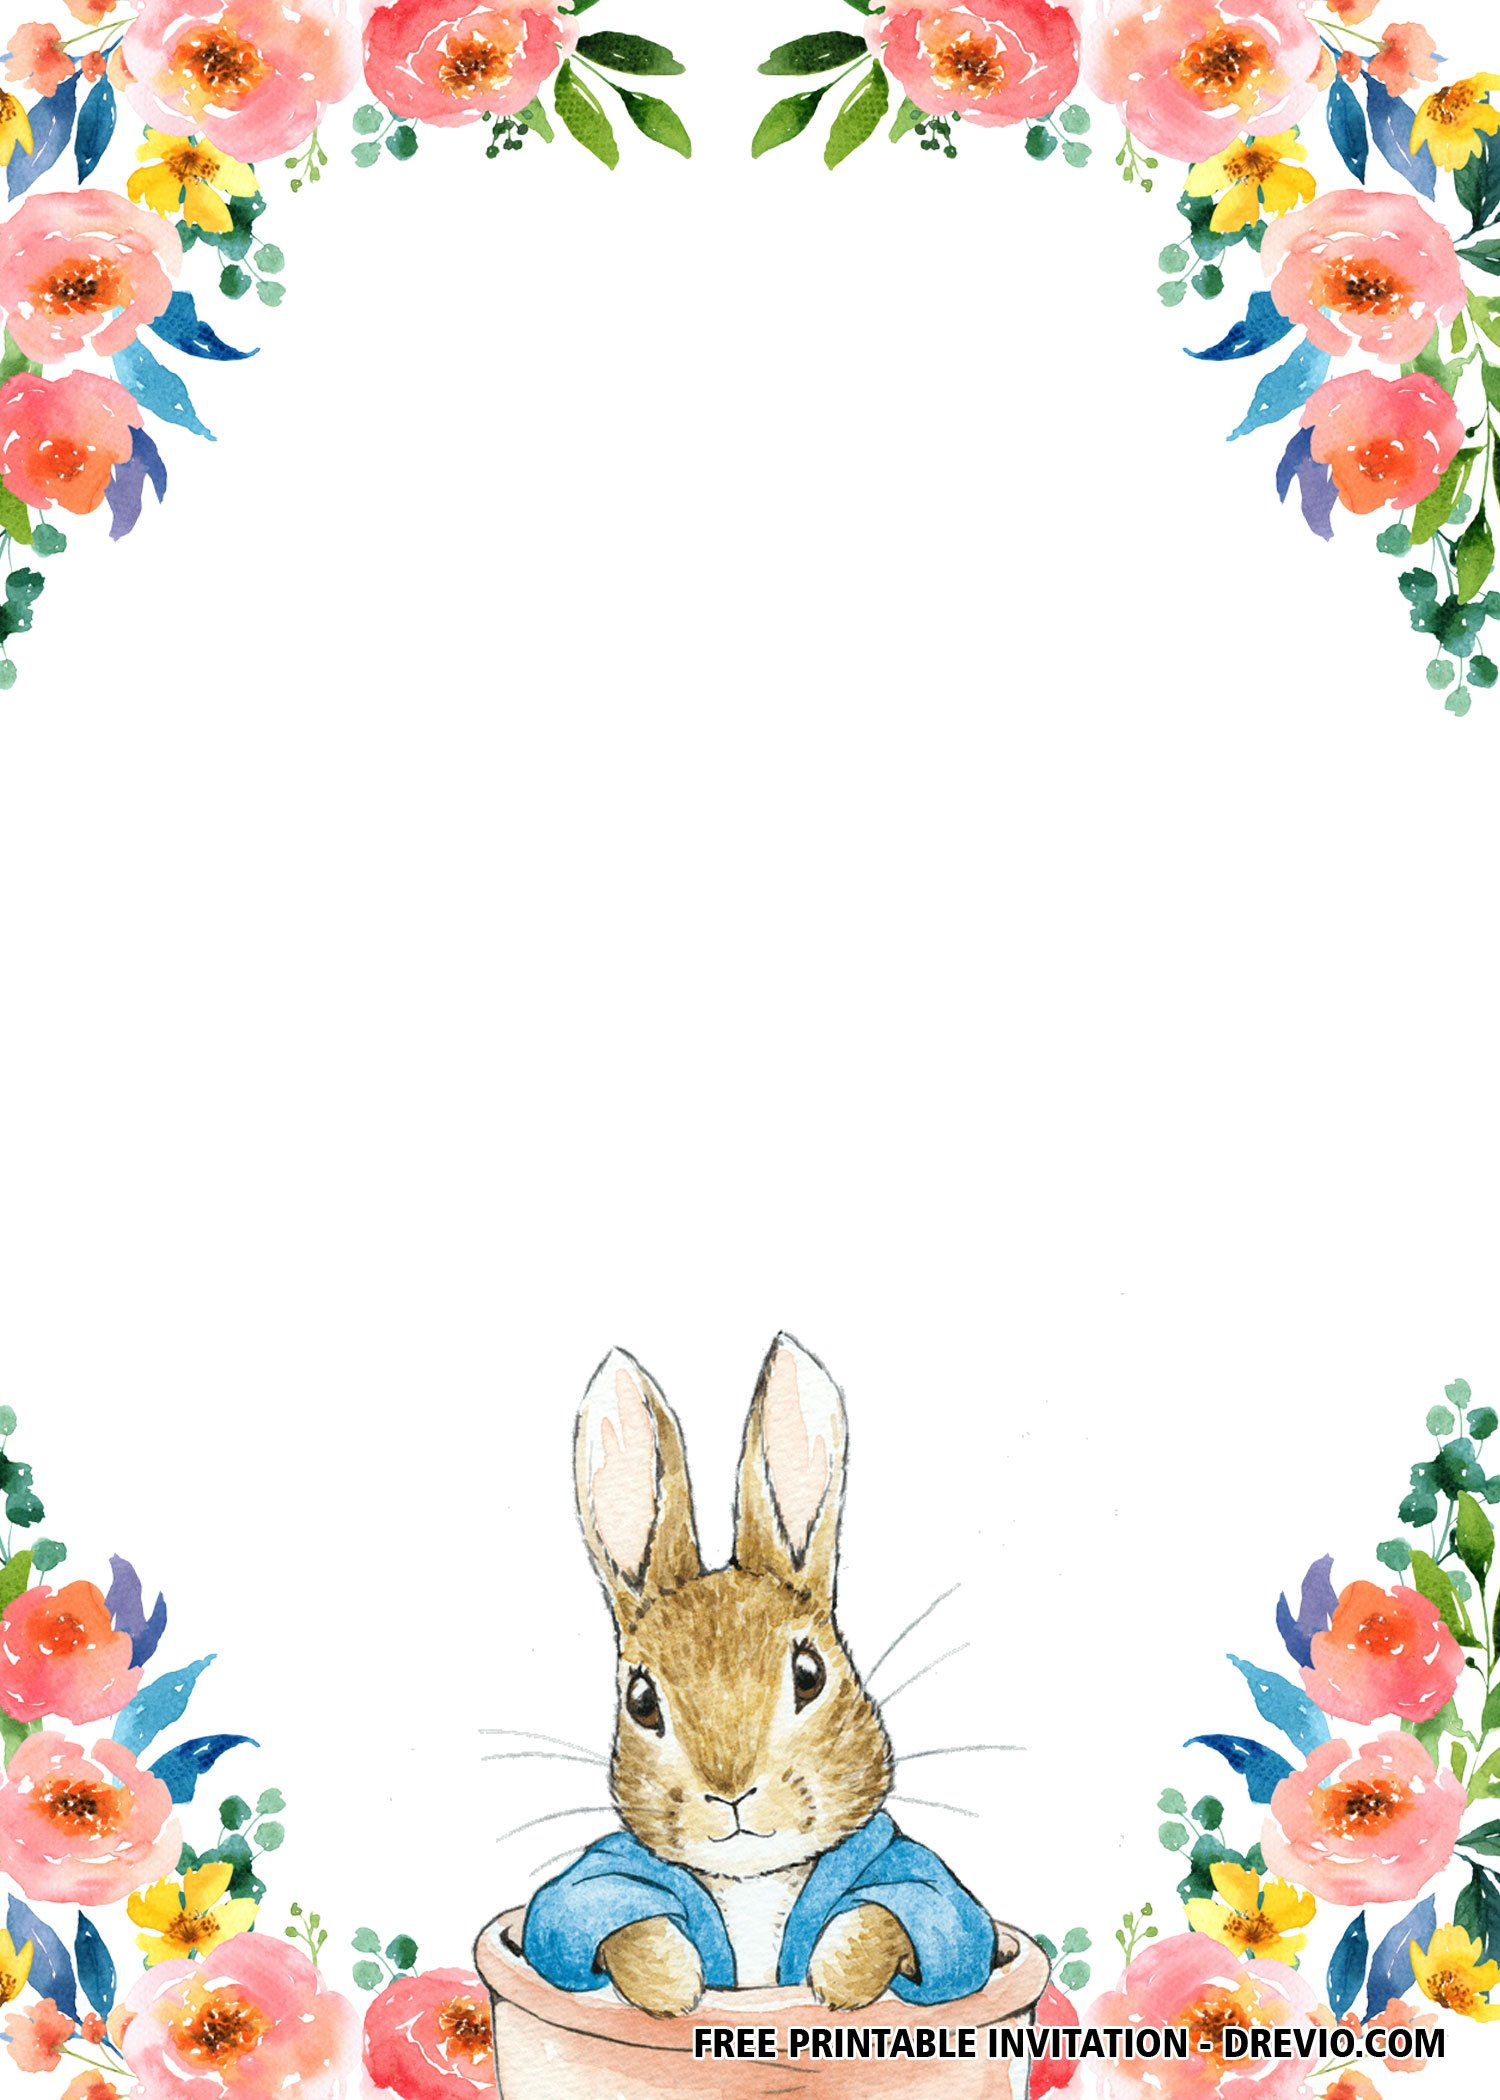 Free Printable Twin Rabbit Flower Invitation Templates